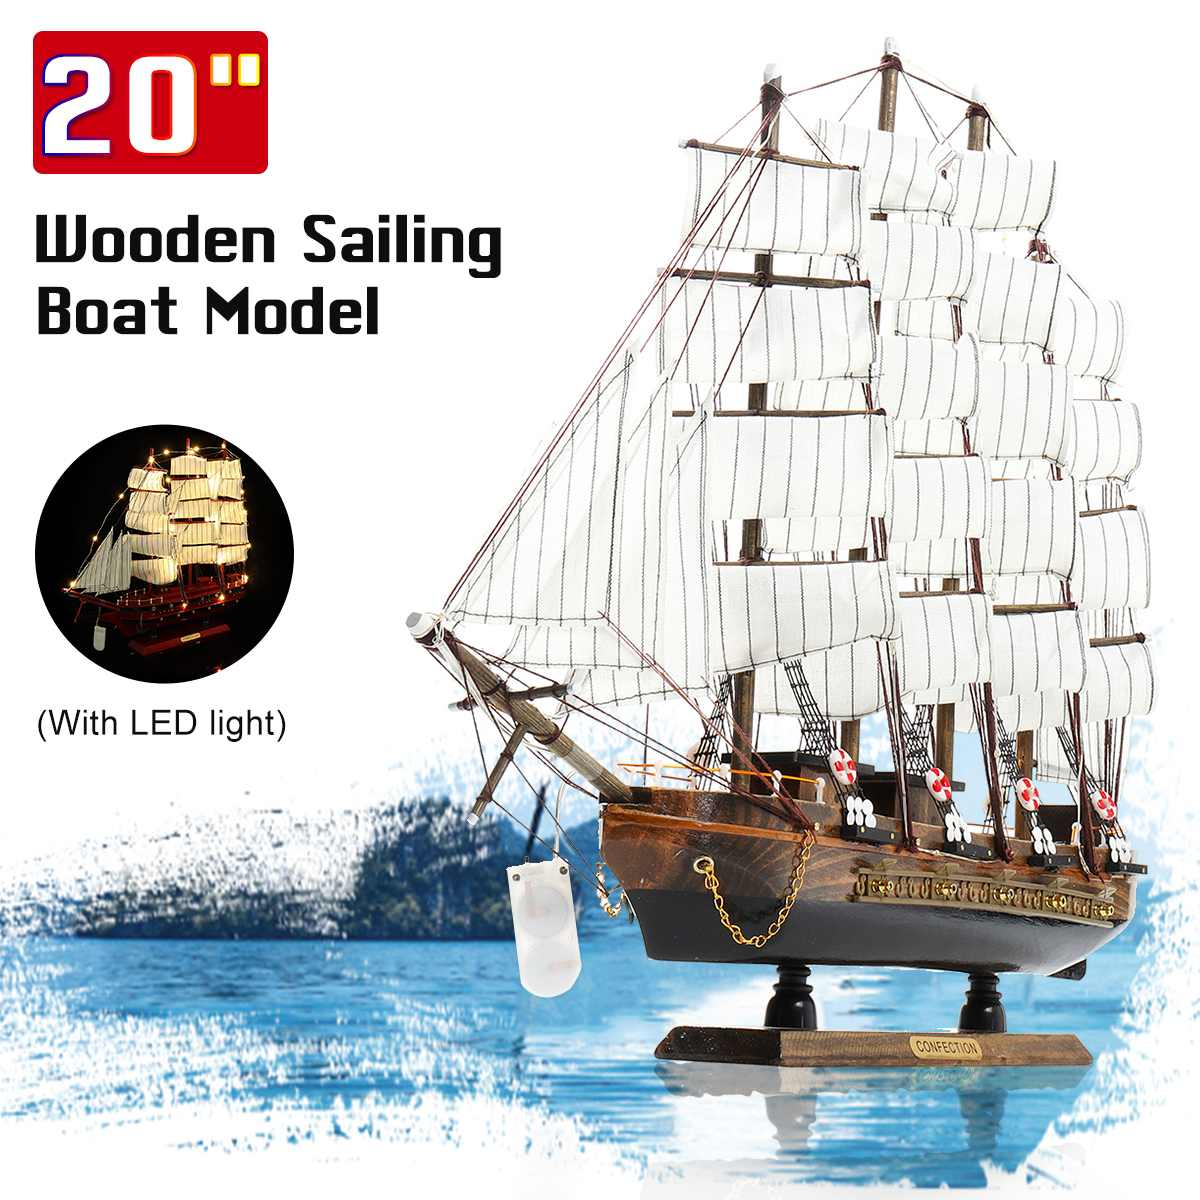 20'' Wooden Wood Sailboat Ship With LED Light Kits Home DIY Model Home Decoration Boat Mediterranean Sea Style Gift Toy For Kids